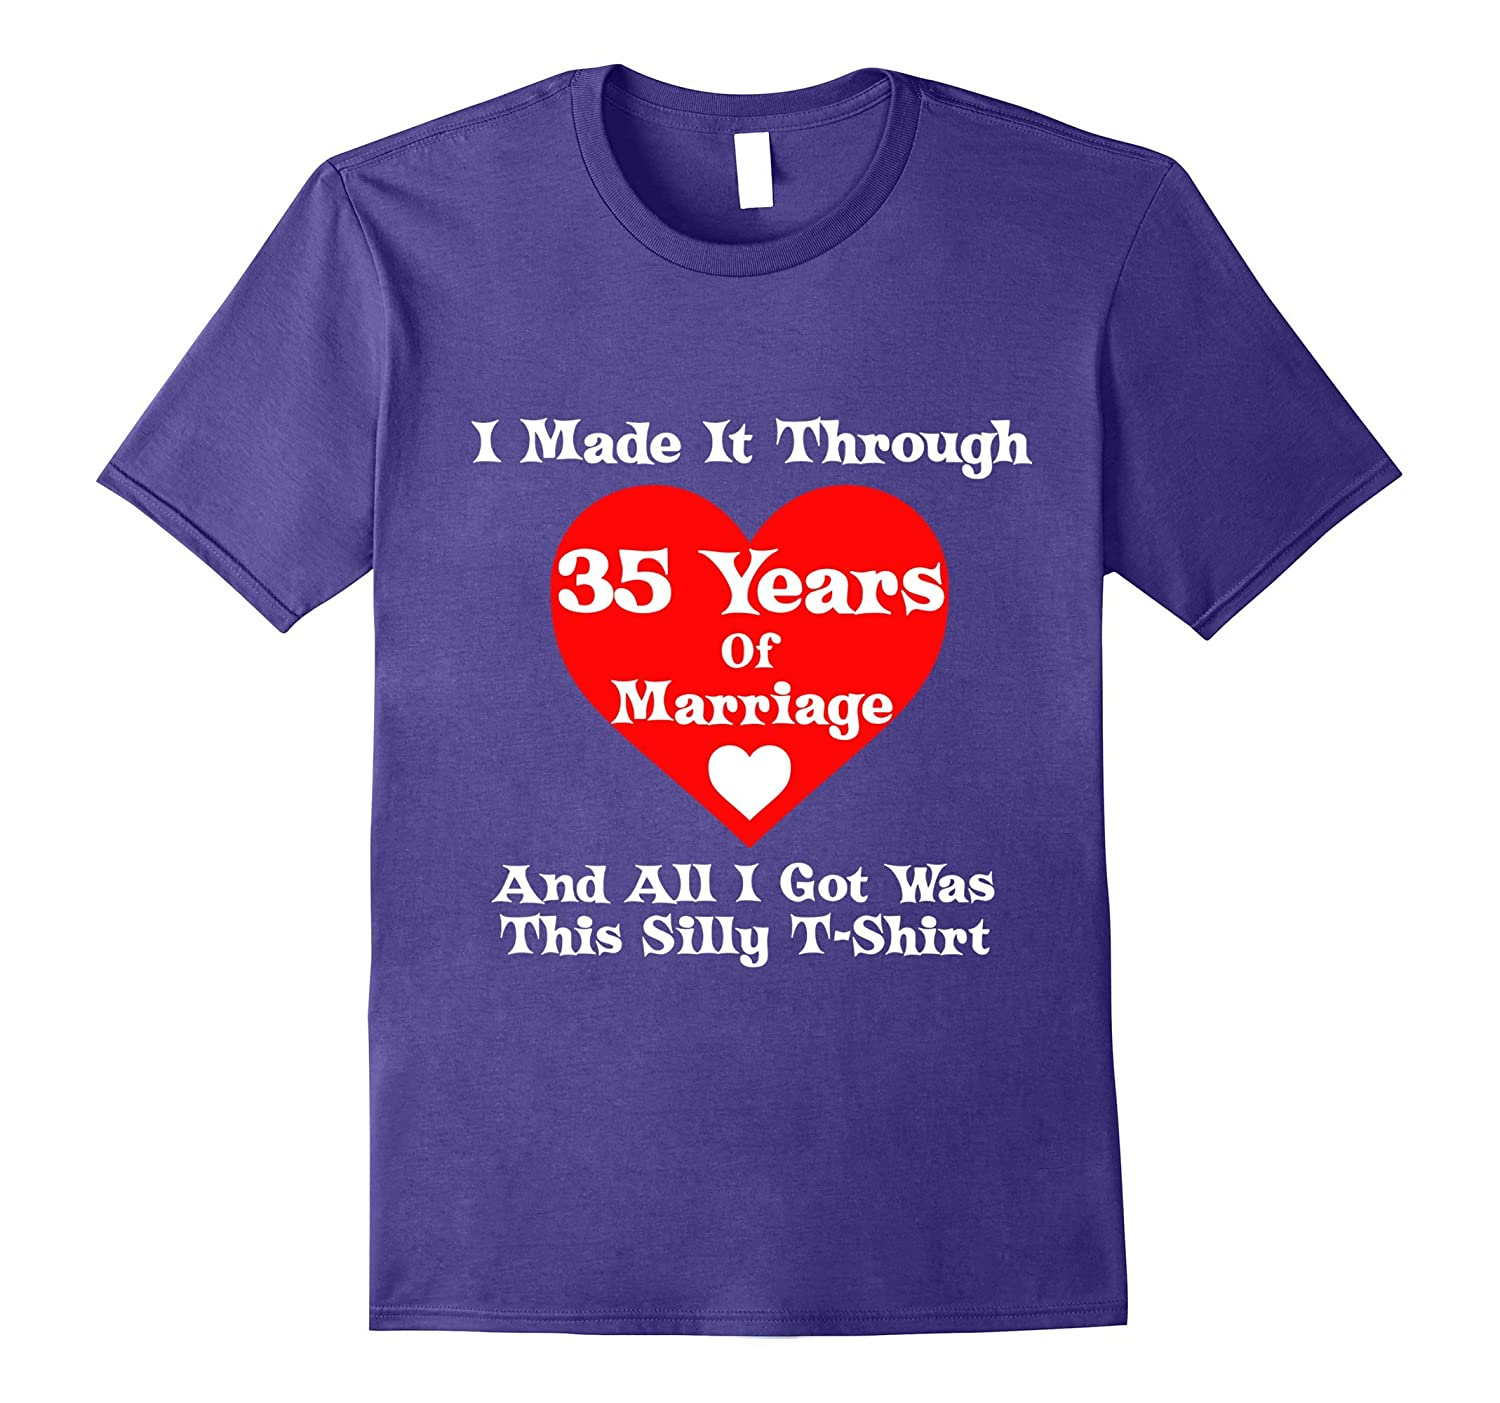 35th Wedding Anniversary Gift Marriage T-Shirt for Men Women-4LVS